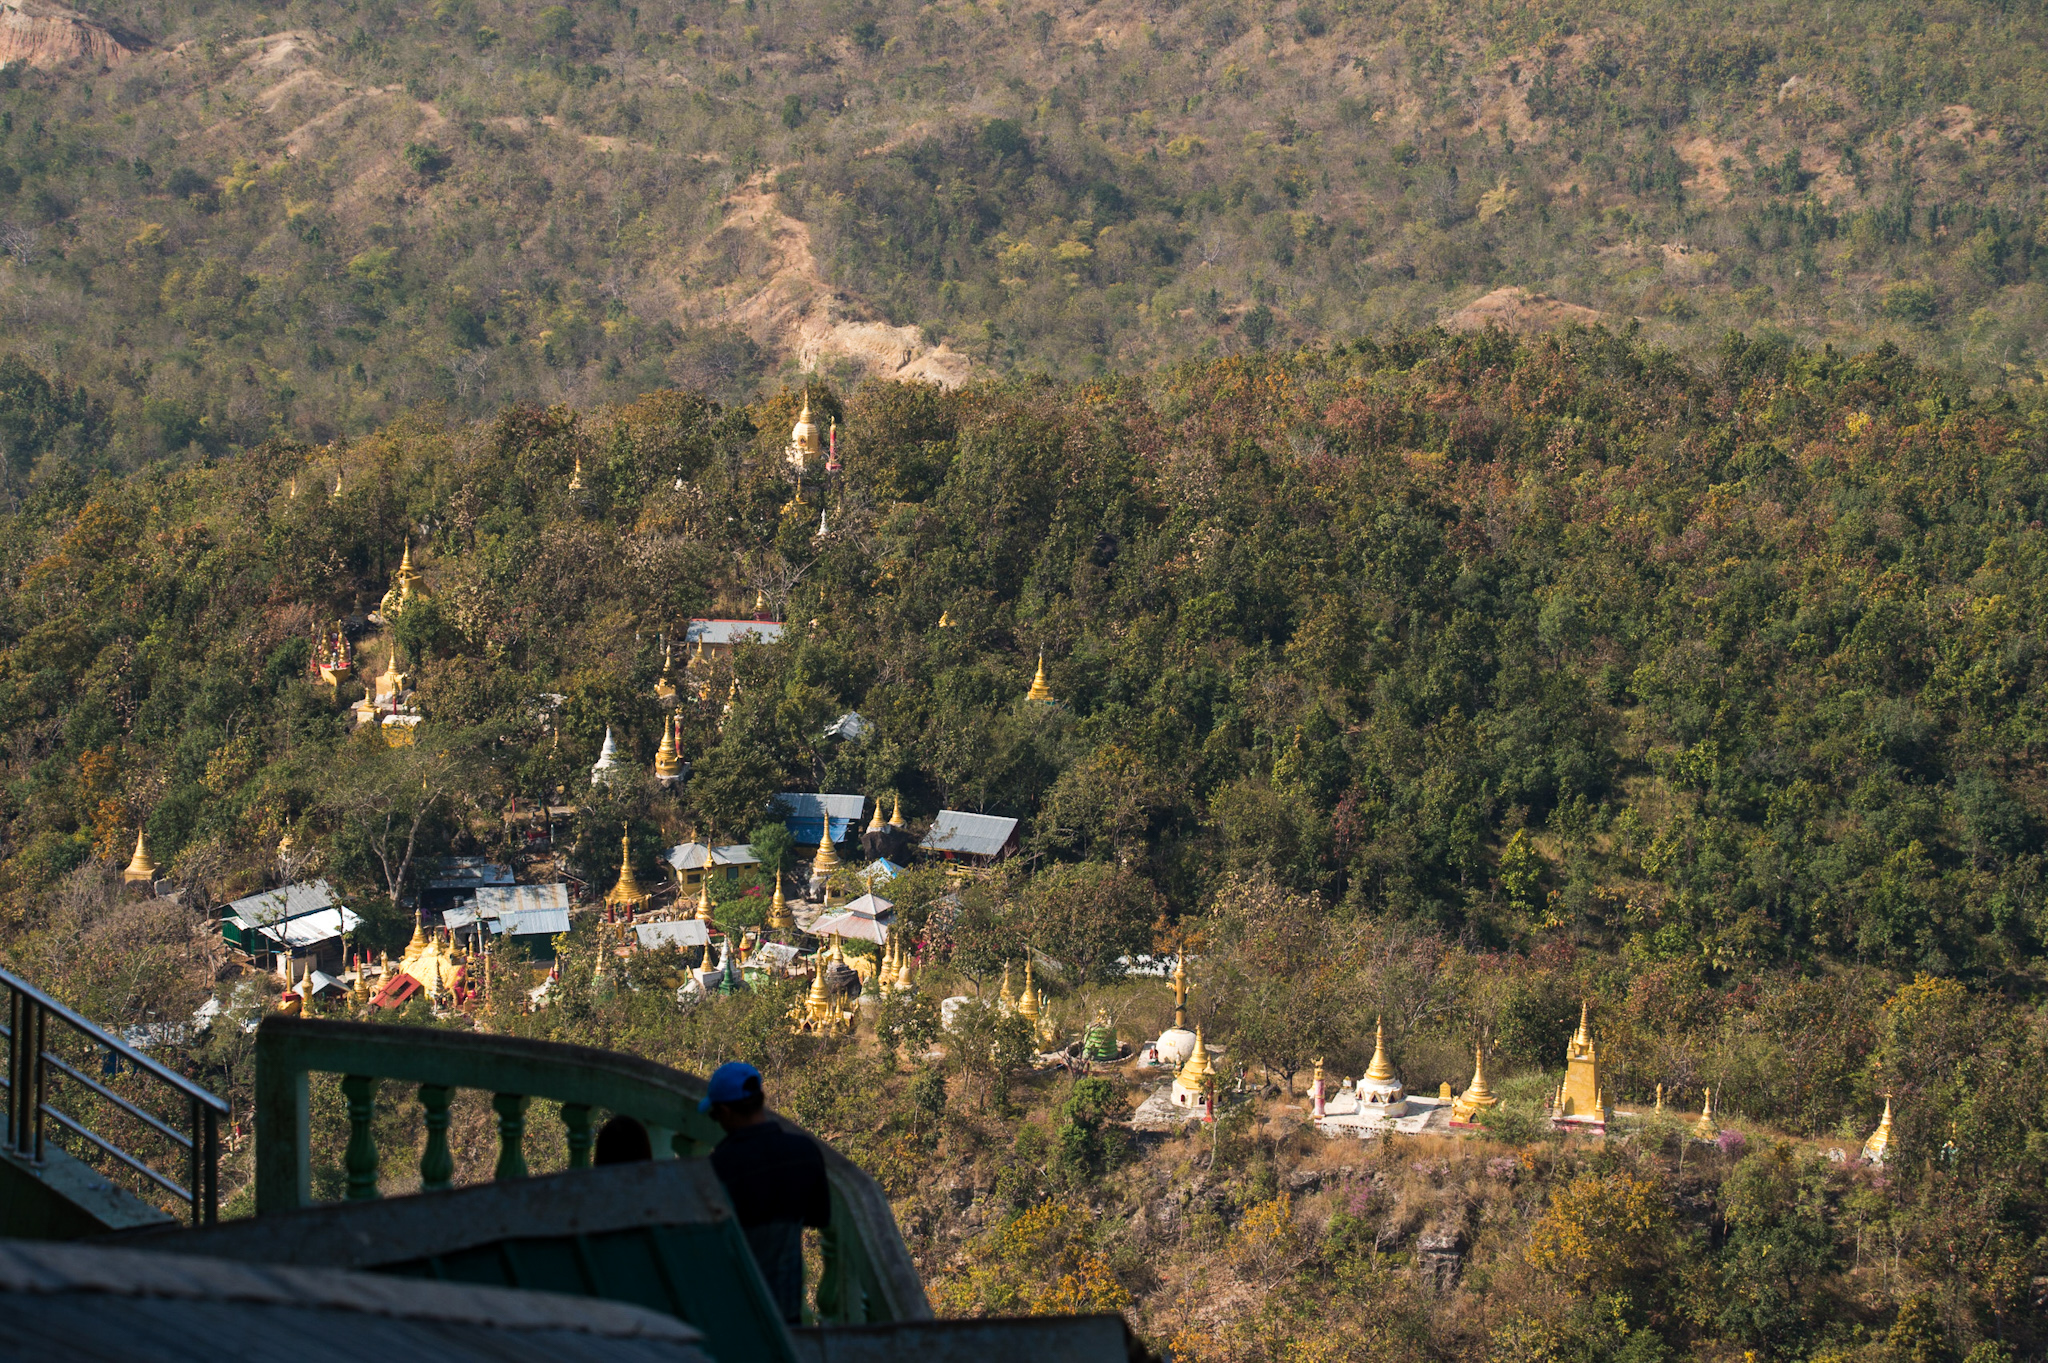 Hey look, a ton of Golden temples strewn about a vast hillside. Weird, I know. 😉